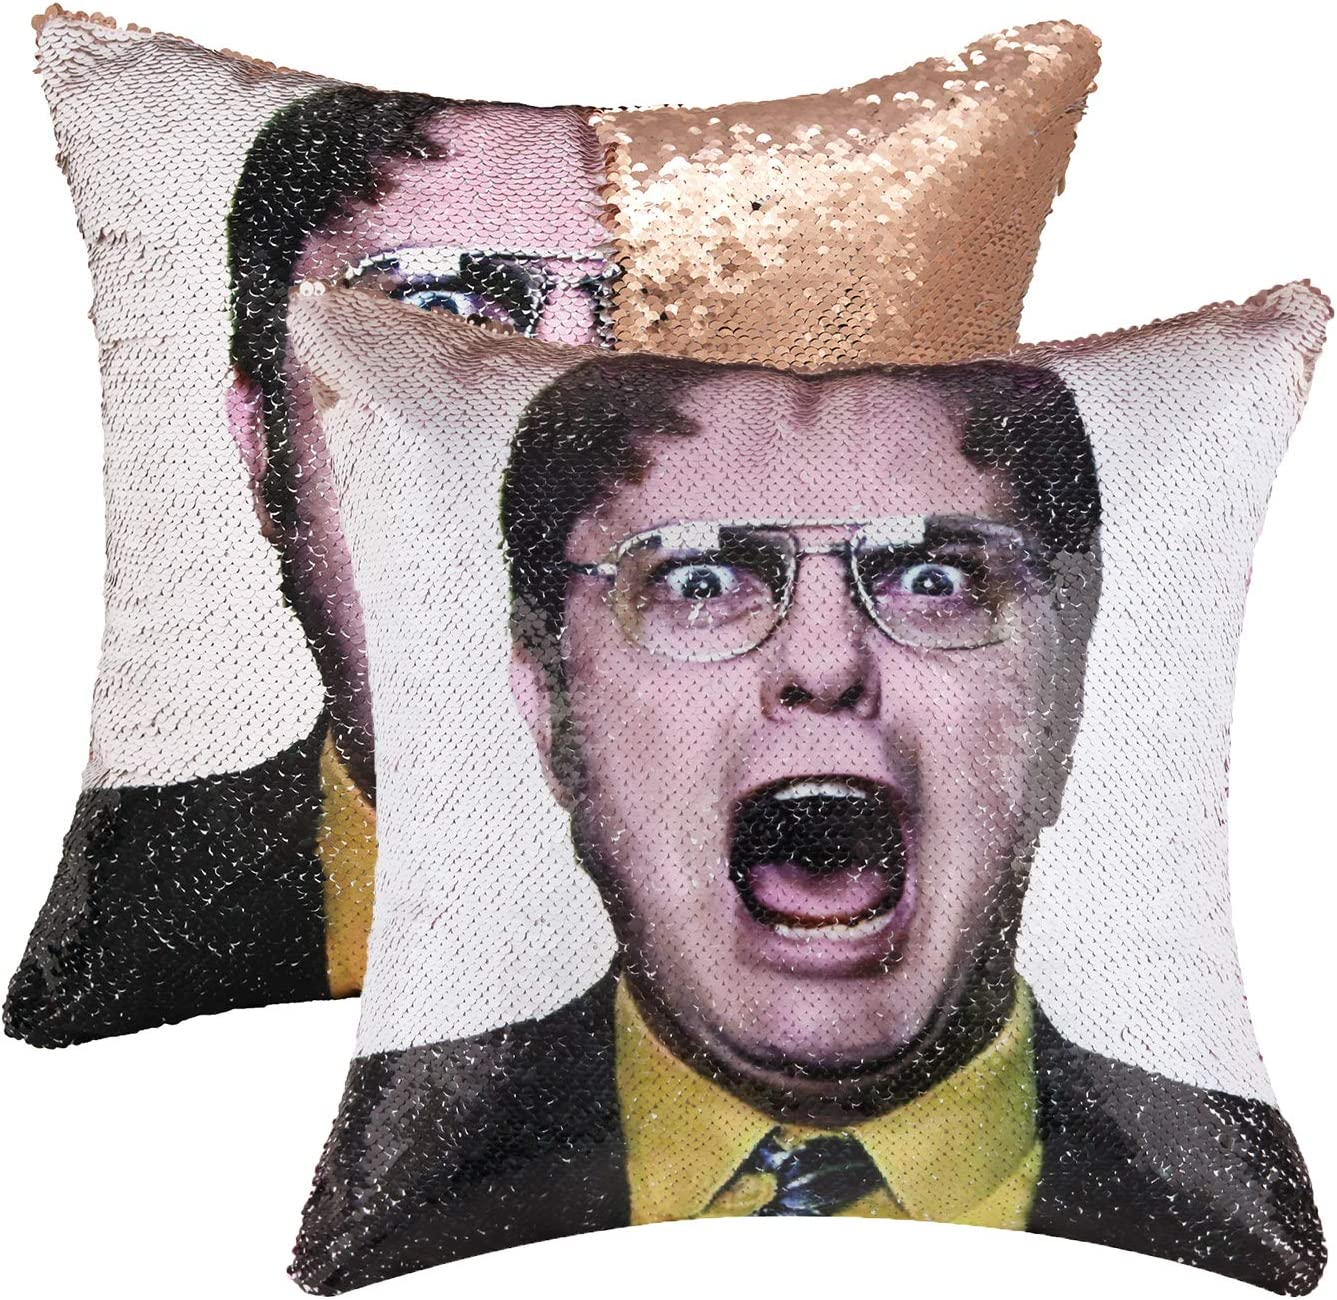 cygnus Funny Reversible Sequin Pillows Cover The Office Dwight Schrute Magic Flip Decorative Change Color Pillowcase for Couch Sofa Bed, 16¡°x16¡±,Champagne